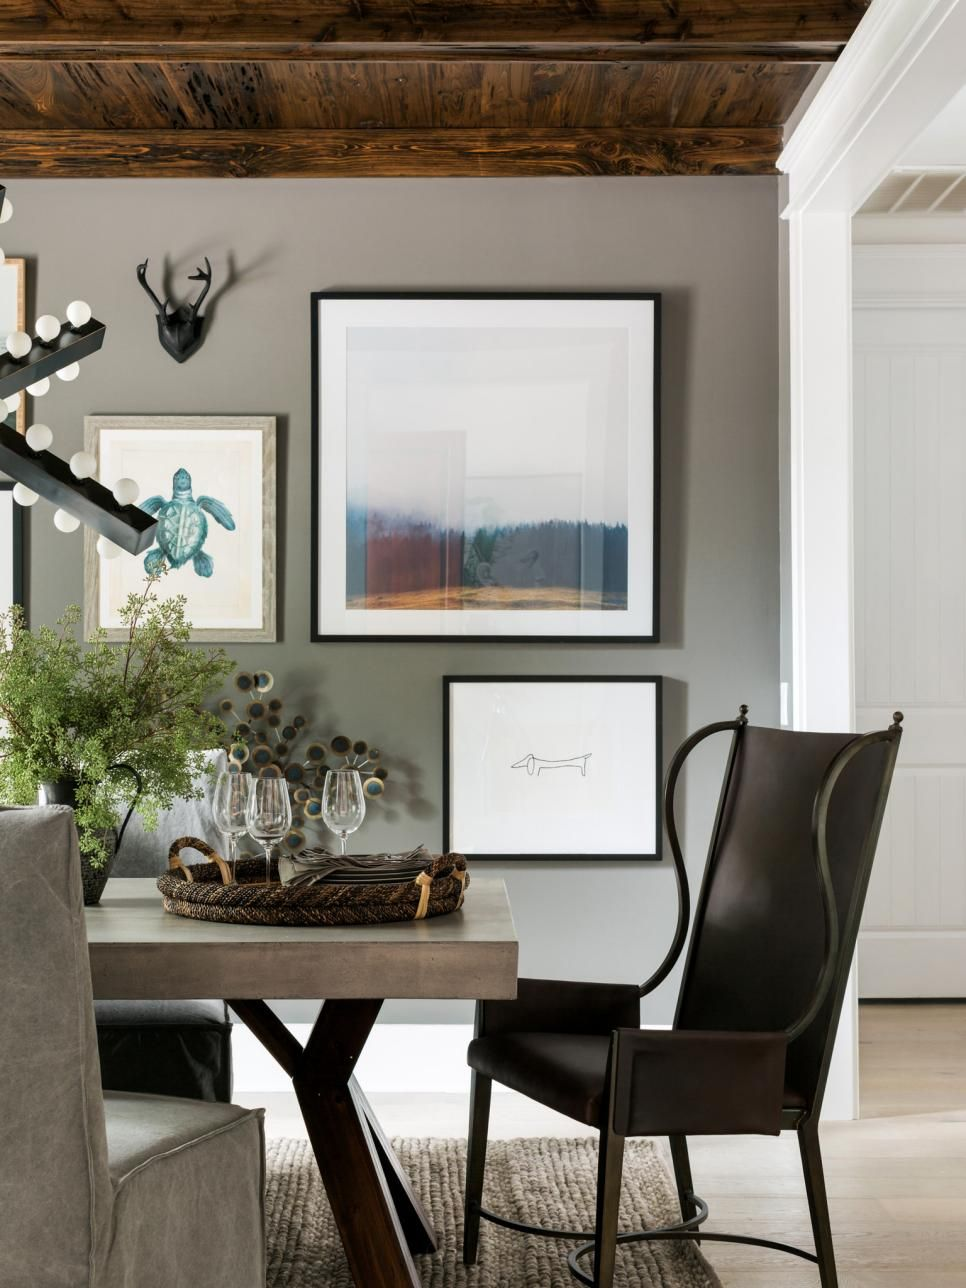 Dream Home 2017: Dining Room Pictures | HGTV Dream Home 2017 ...